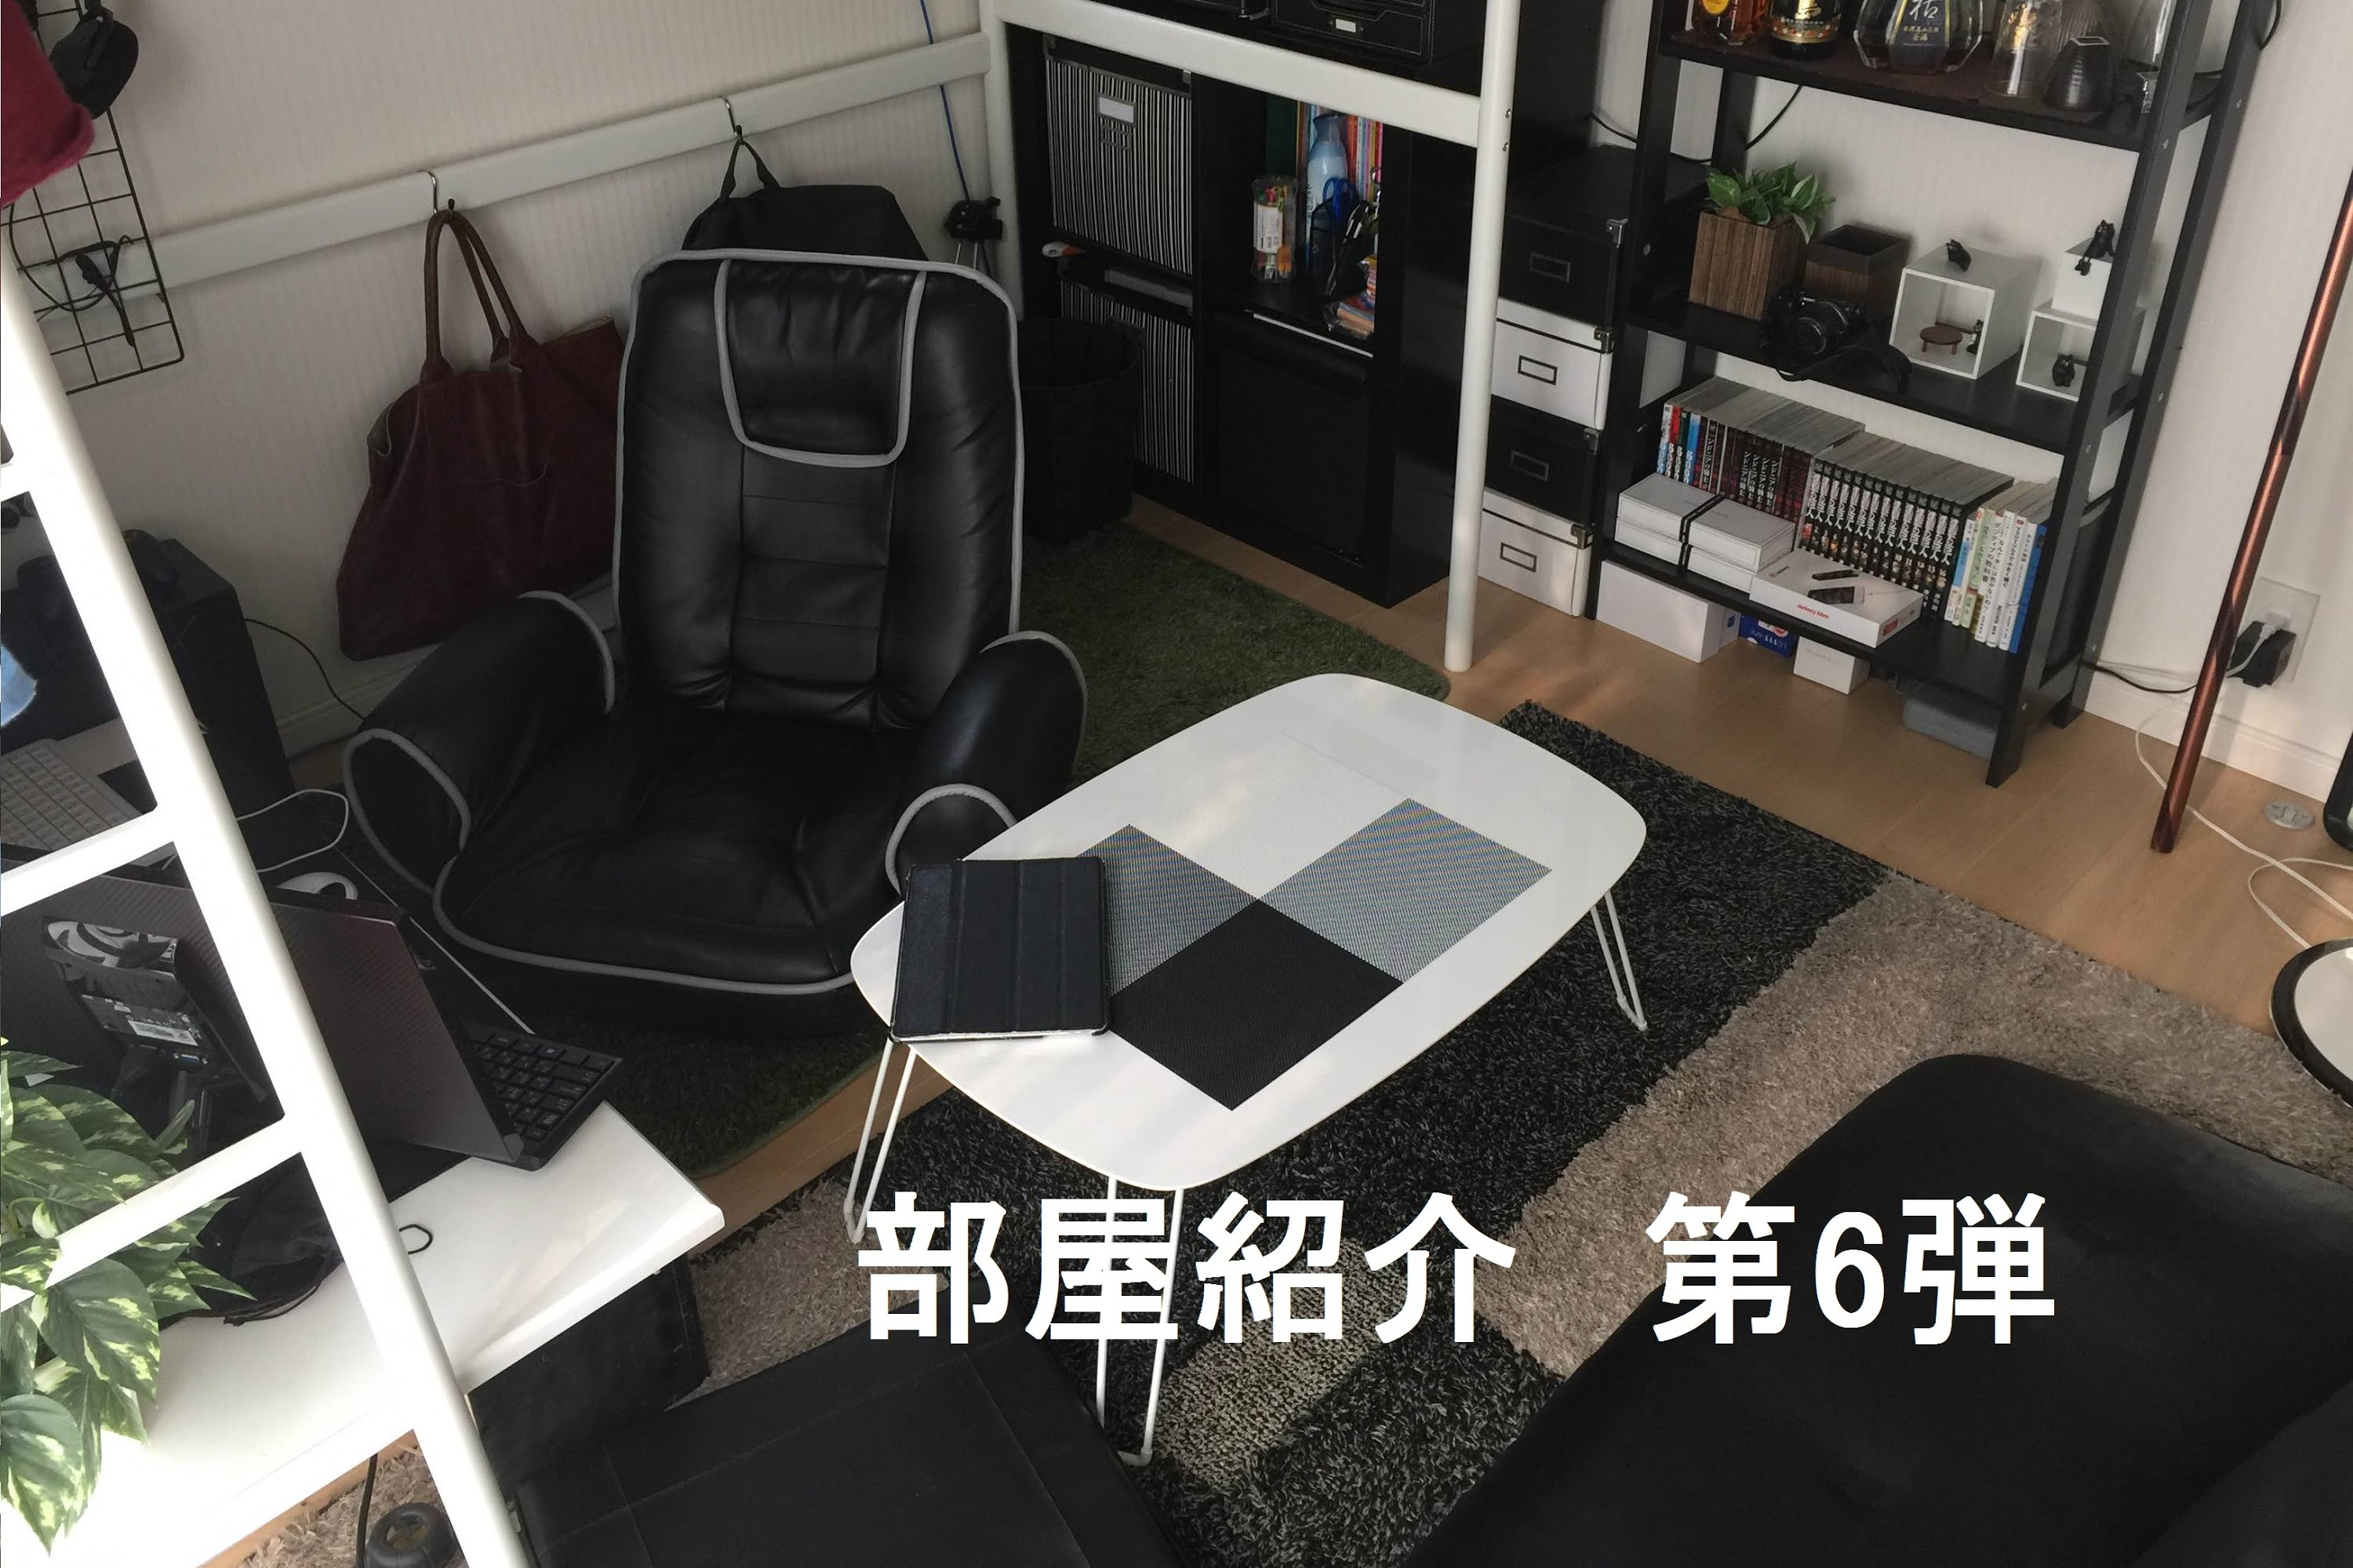 部屋紹介 第6弾 introduction of my room